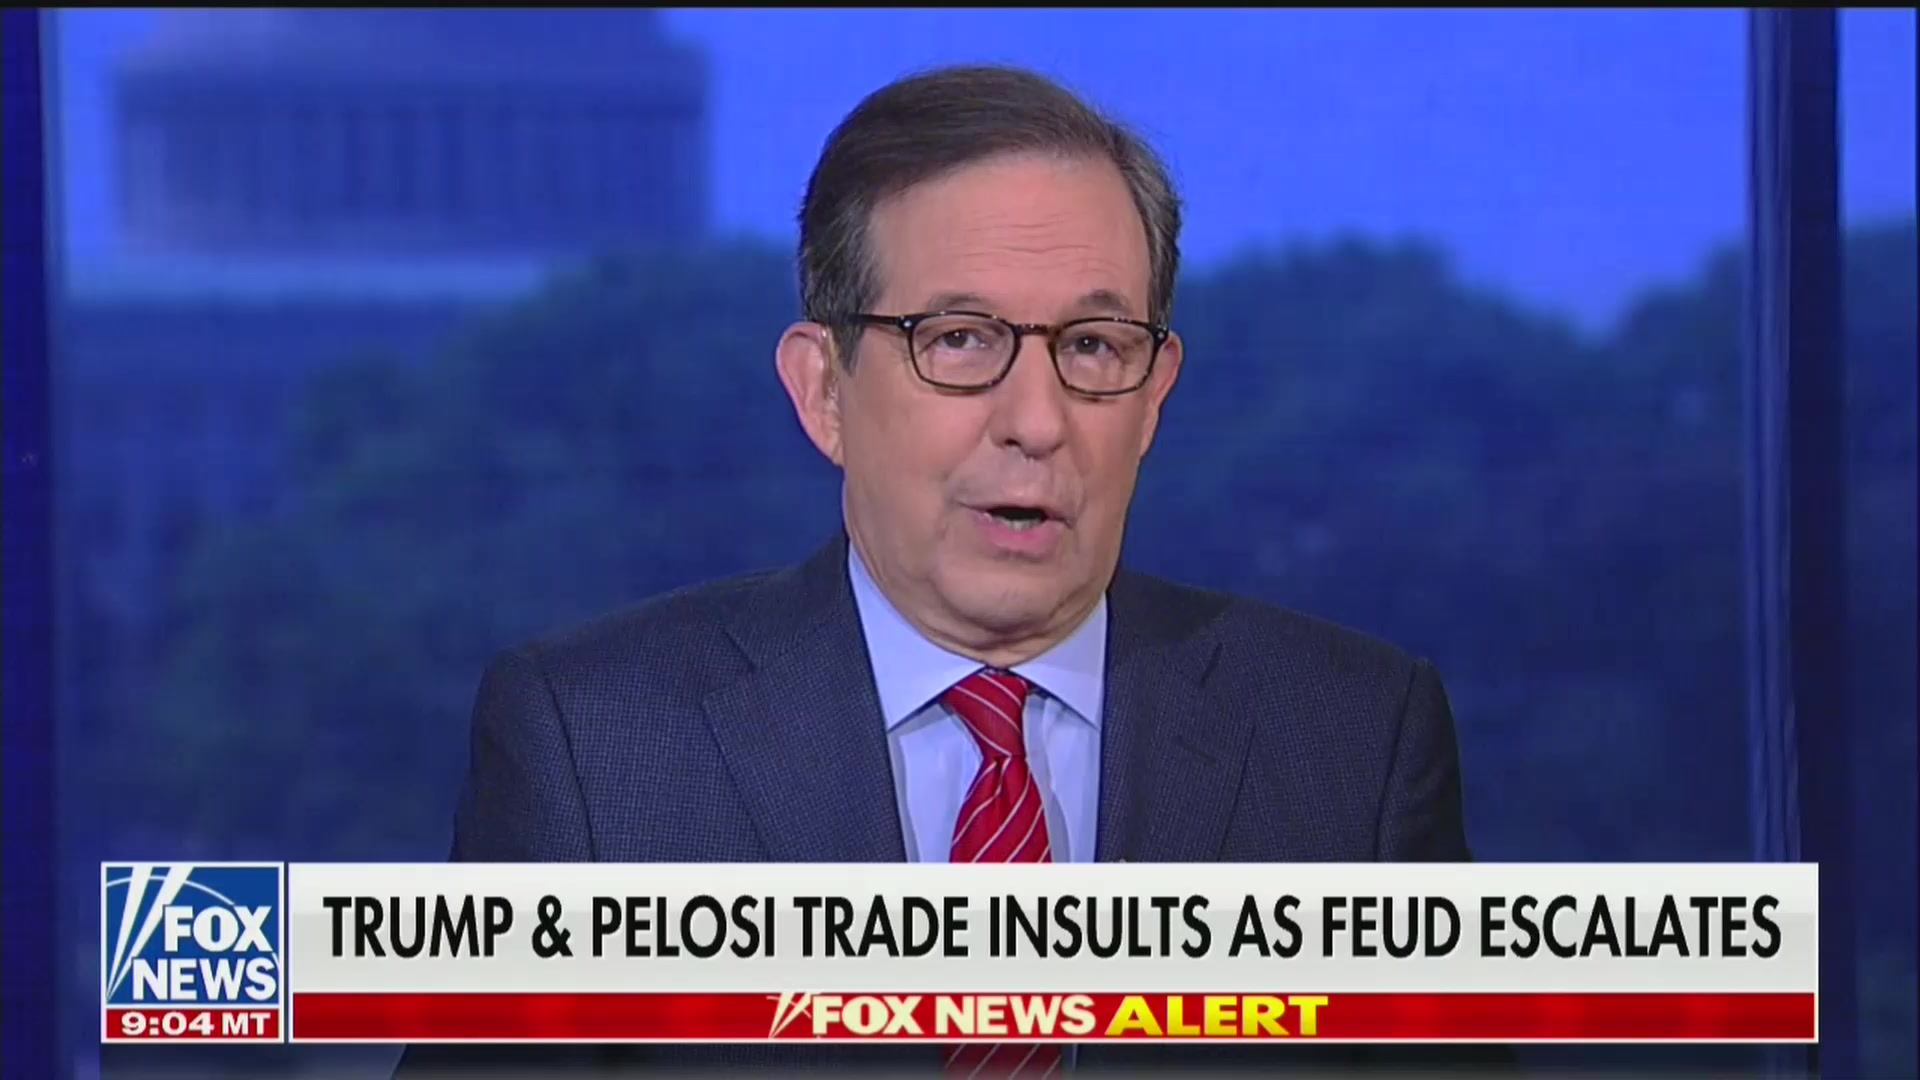 Fox News' Chris Wallace: Nancy Pelosi Is 'Clearly' Getting Under Trump's Skin